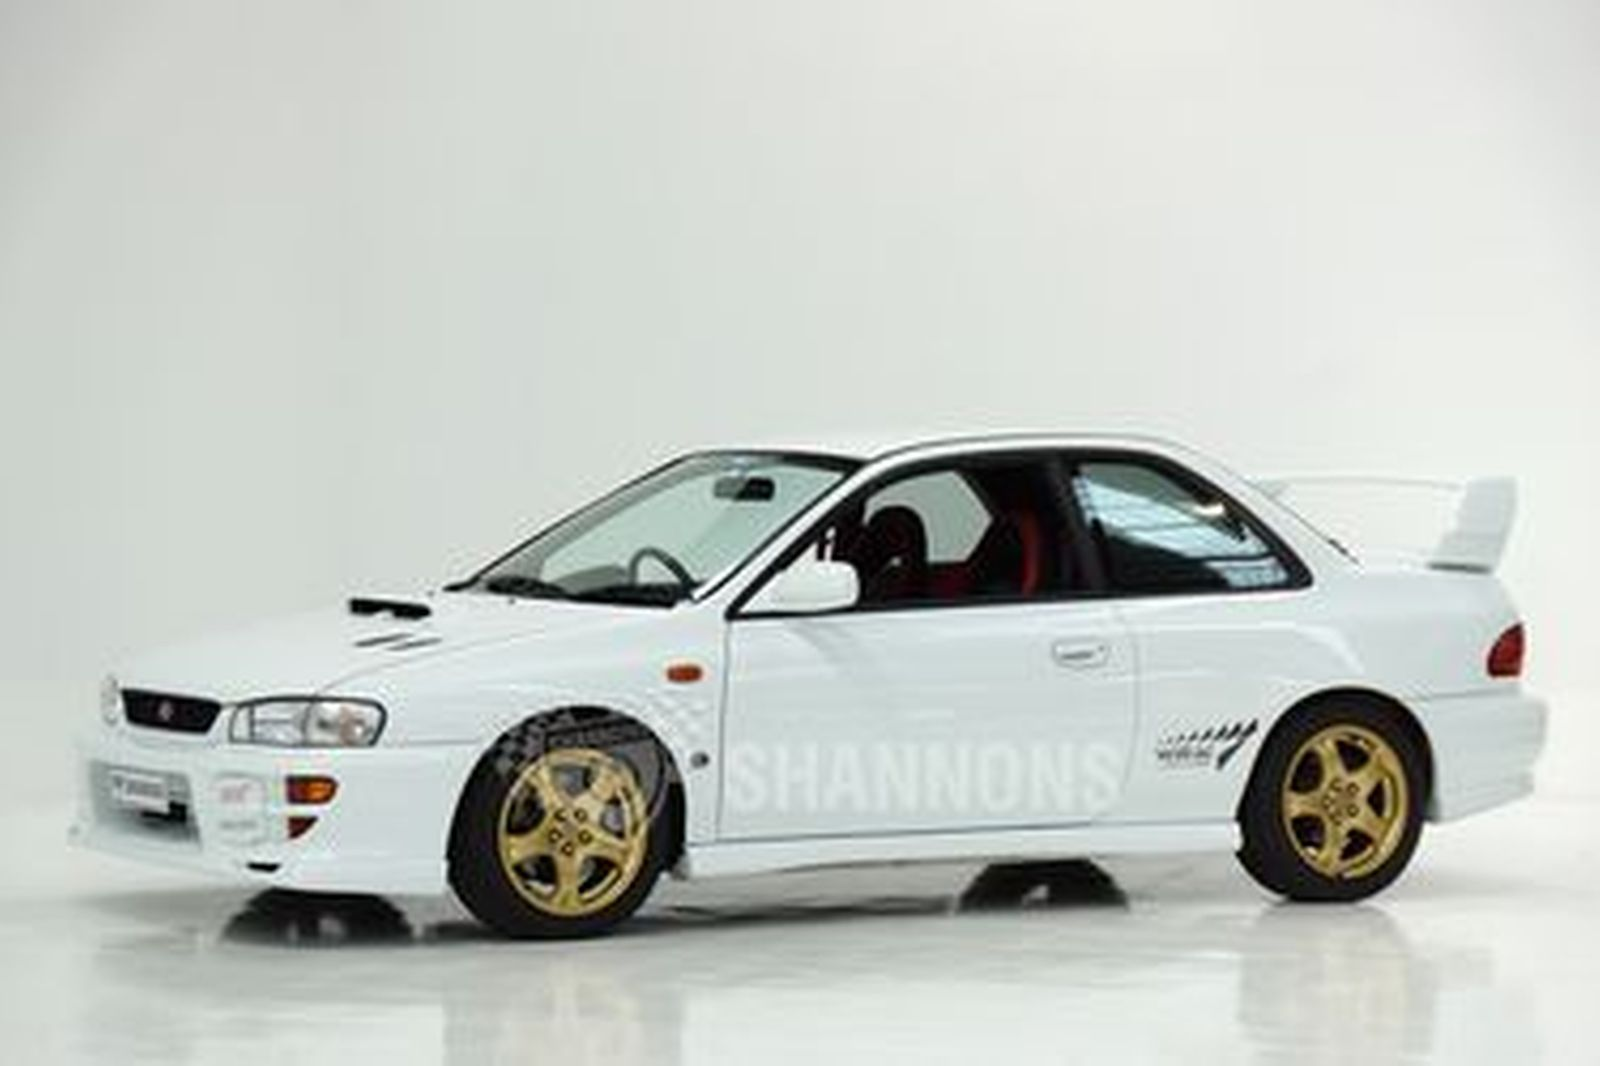 Subaru Impreza WRX STI Version 5 Coupe